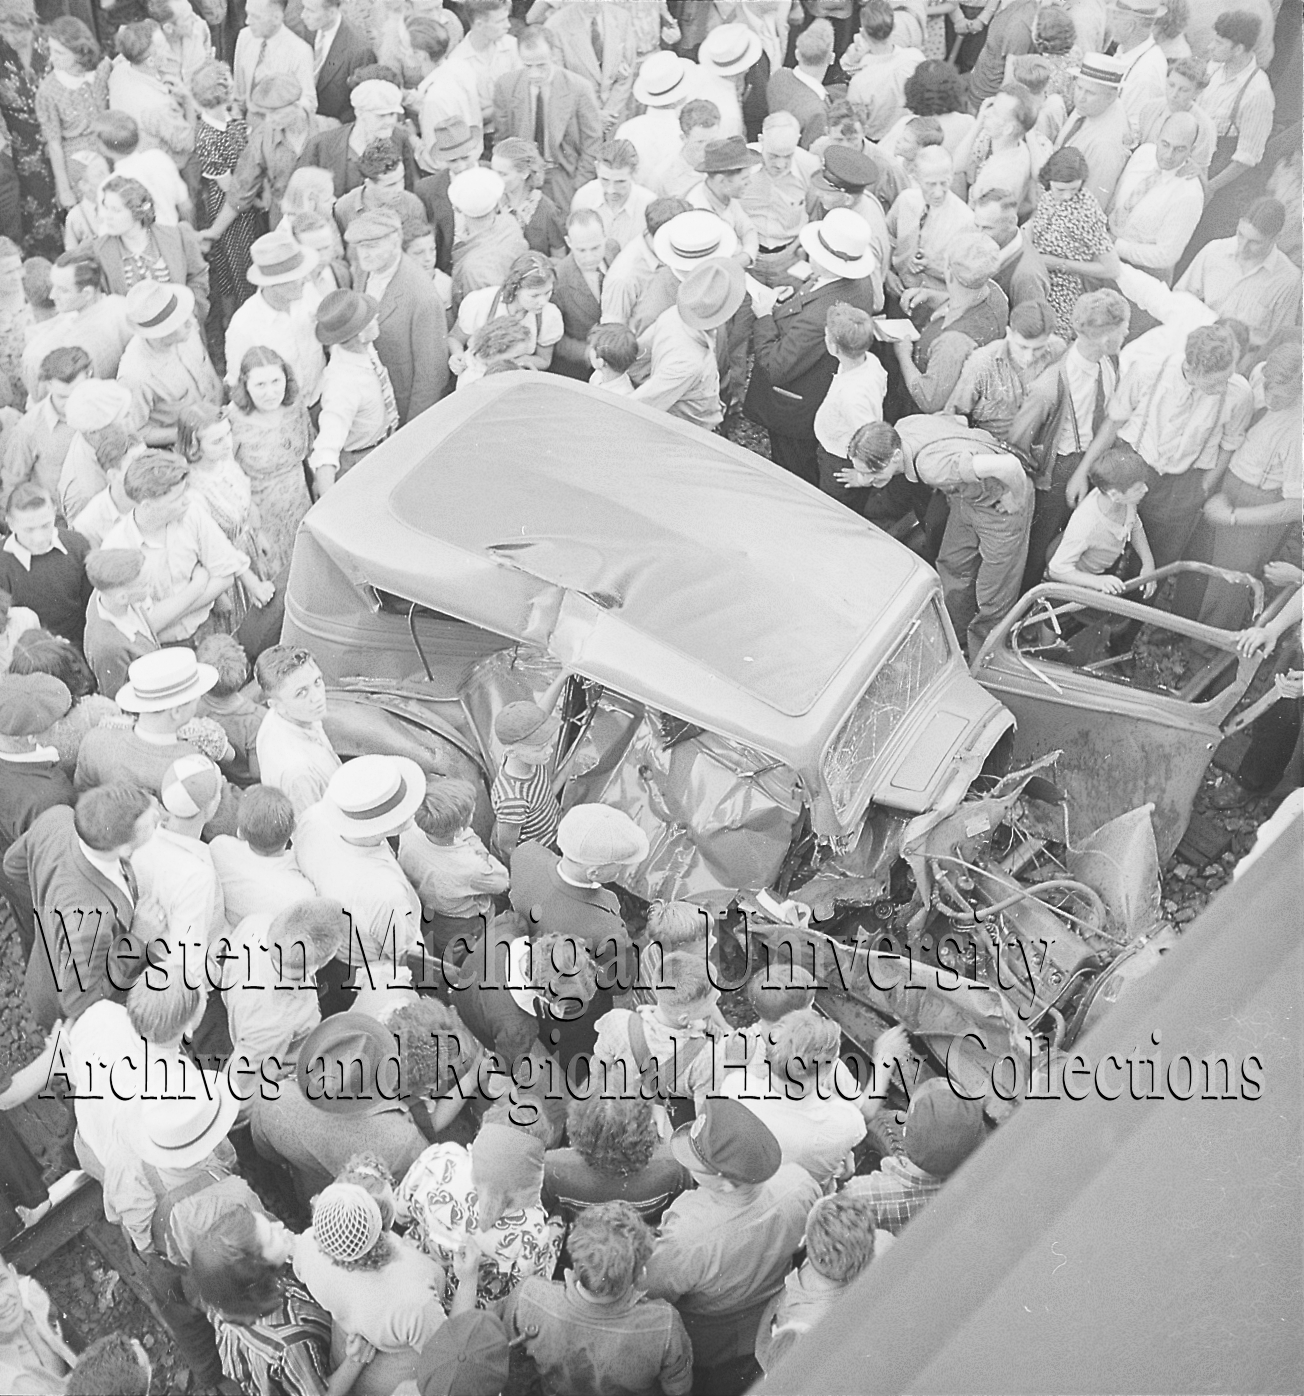 Crowd around an automobile and train car accident on the railroad tracks, overhead view